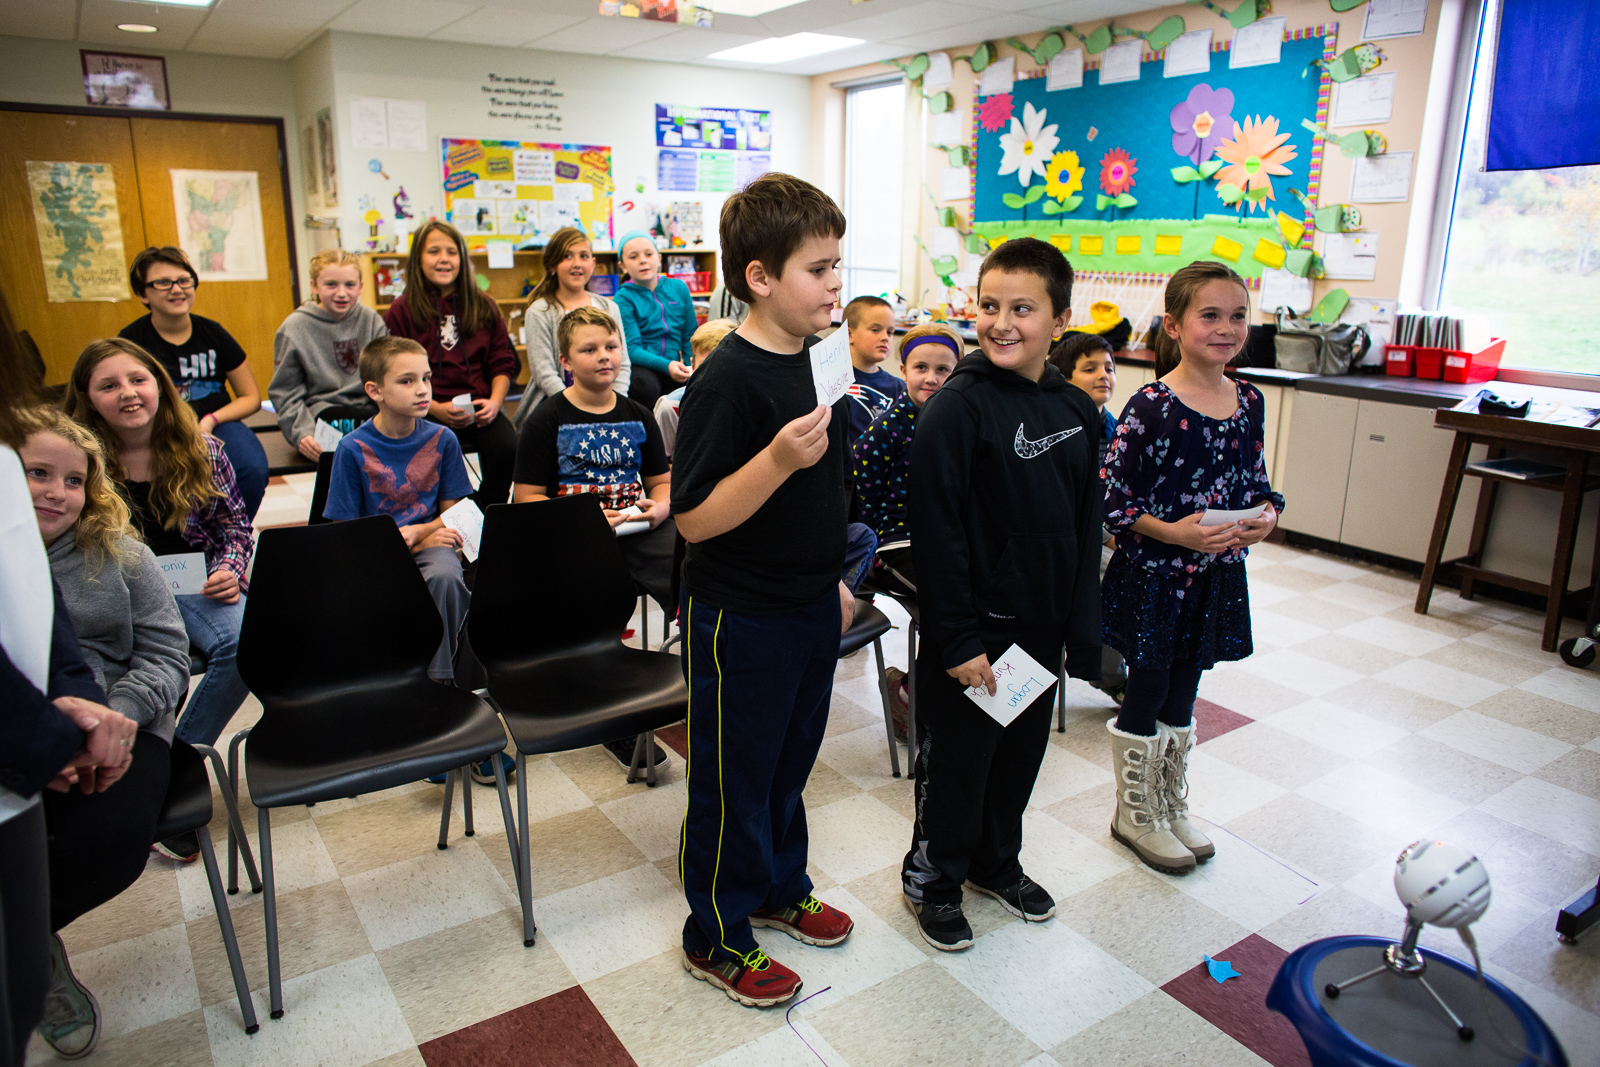 Teacher Kendra Myers and her fourth grade Bellows Free Academy class in Fairfax, Vermont during an exchange with a classroom in Tunisia on Thursday, October 20, 2016. by Monica Donovan for the George Lucas Educational Foundation